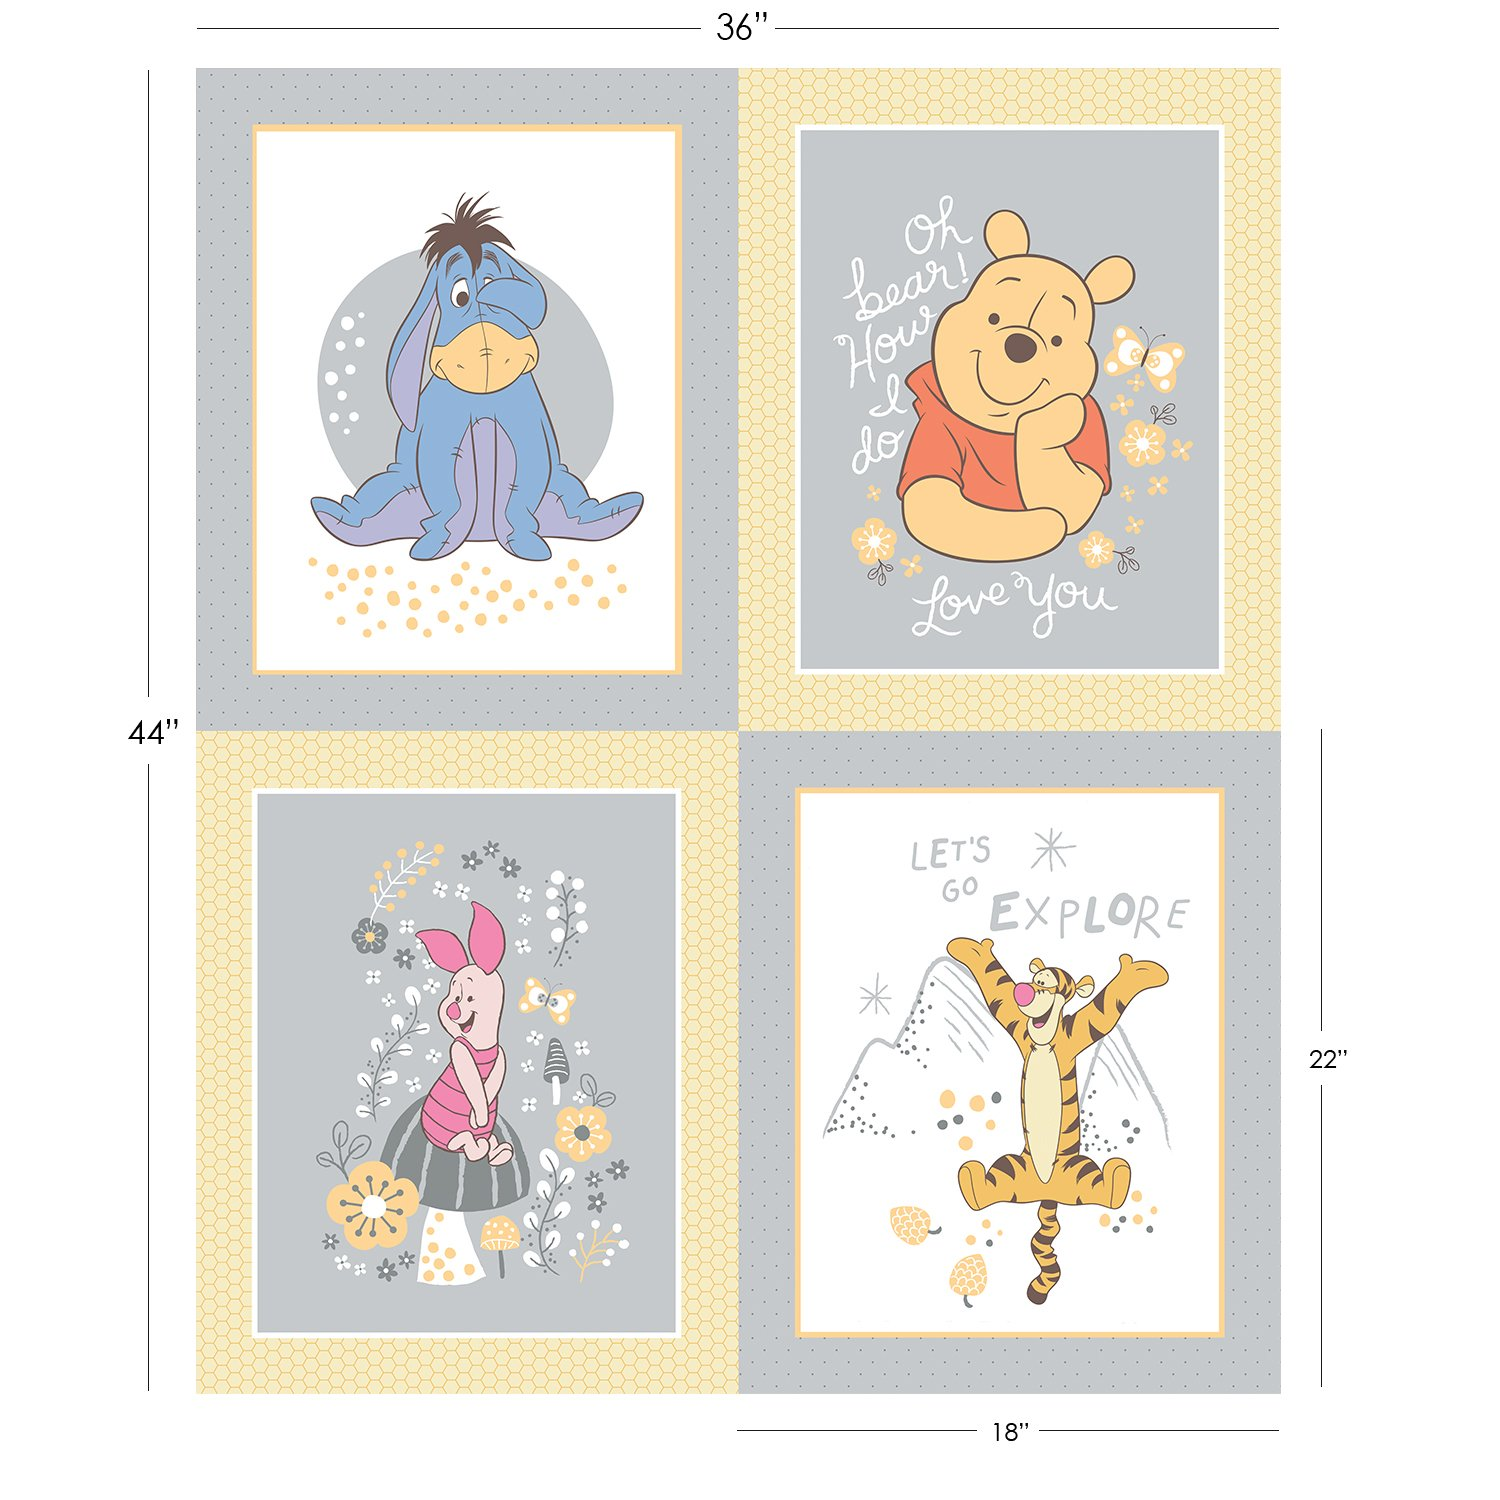 Winnnie the Pooh Character Panel